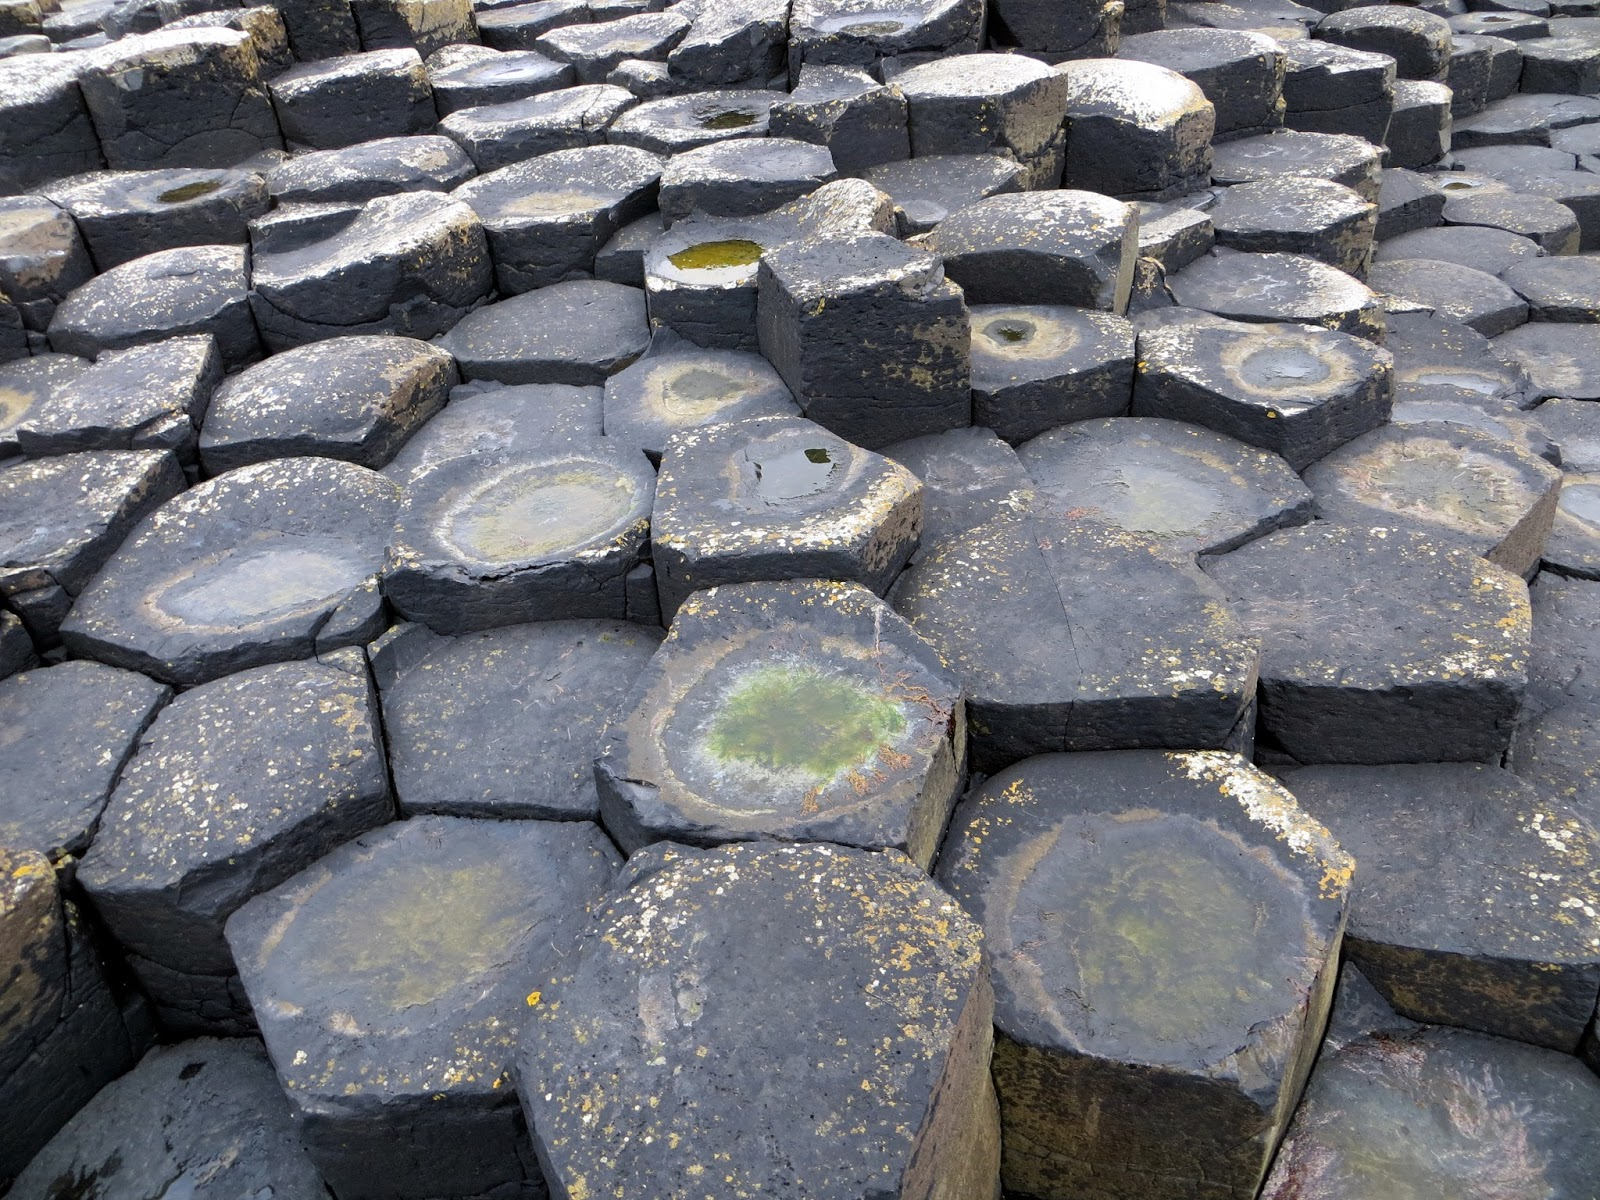 Giant's Causeway, Ireland, Northern Ireland, Basalt columns, volcanic rock, Antrim, causeway coast, amazing, places to see, bucket list, Ulster,